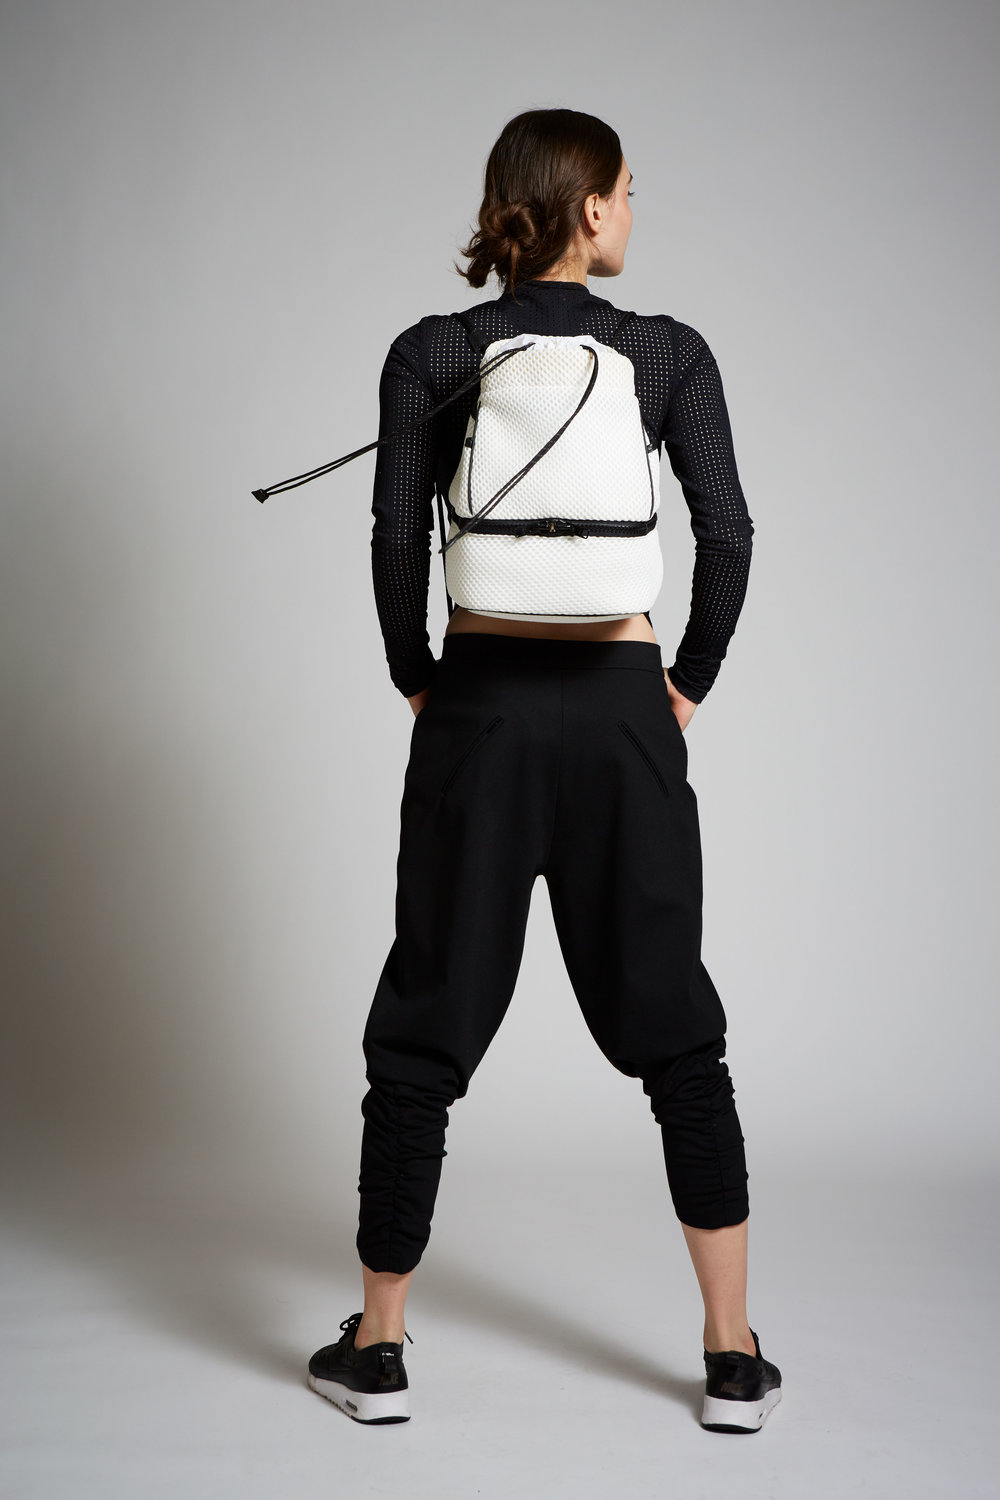 white-backpack.jpg